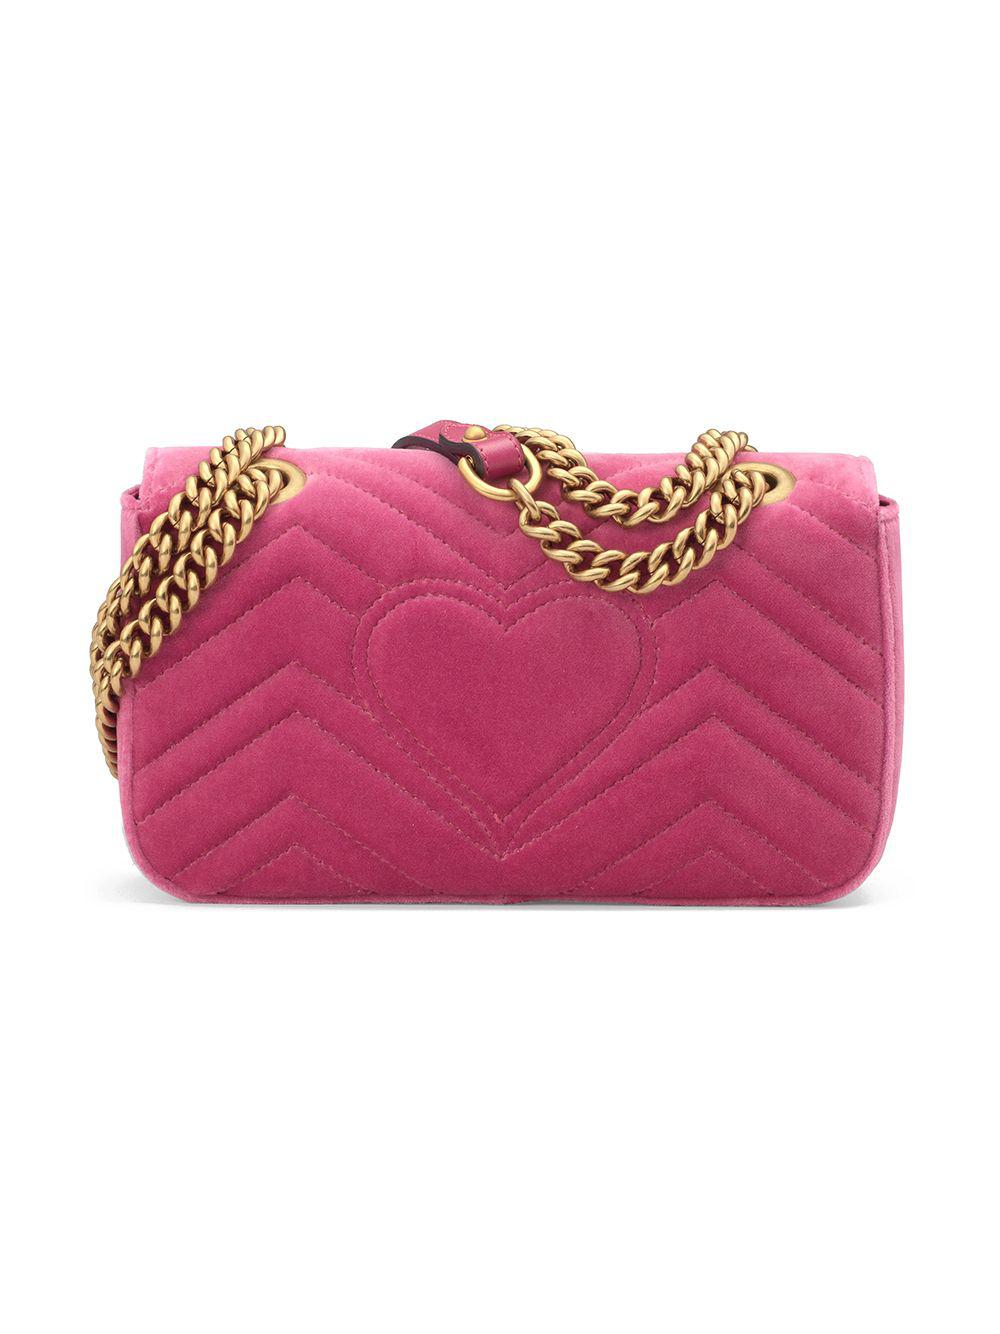 7a29fad2b70 Lyst - Gucci GG Marmont Velvet Mini Bag in Pink